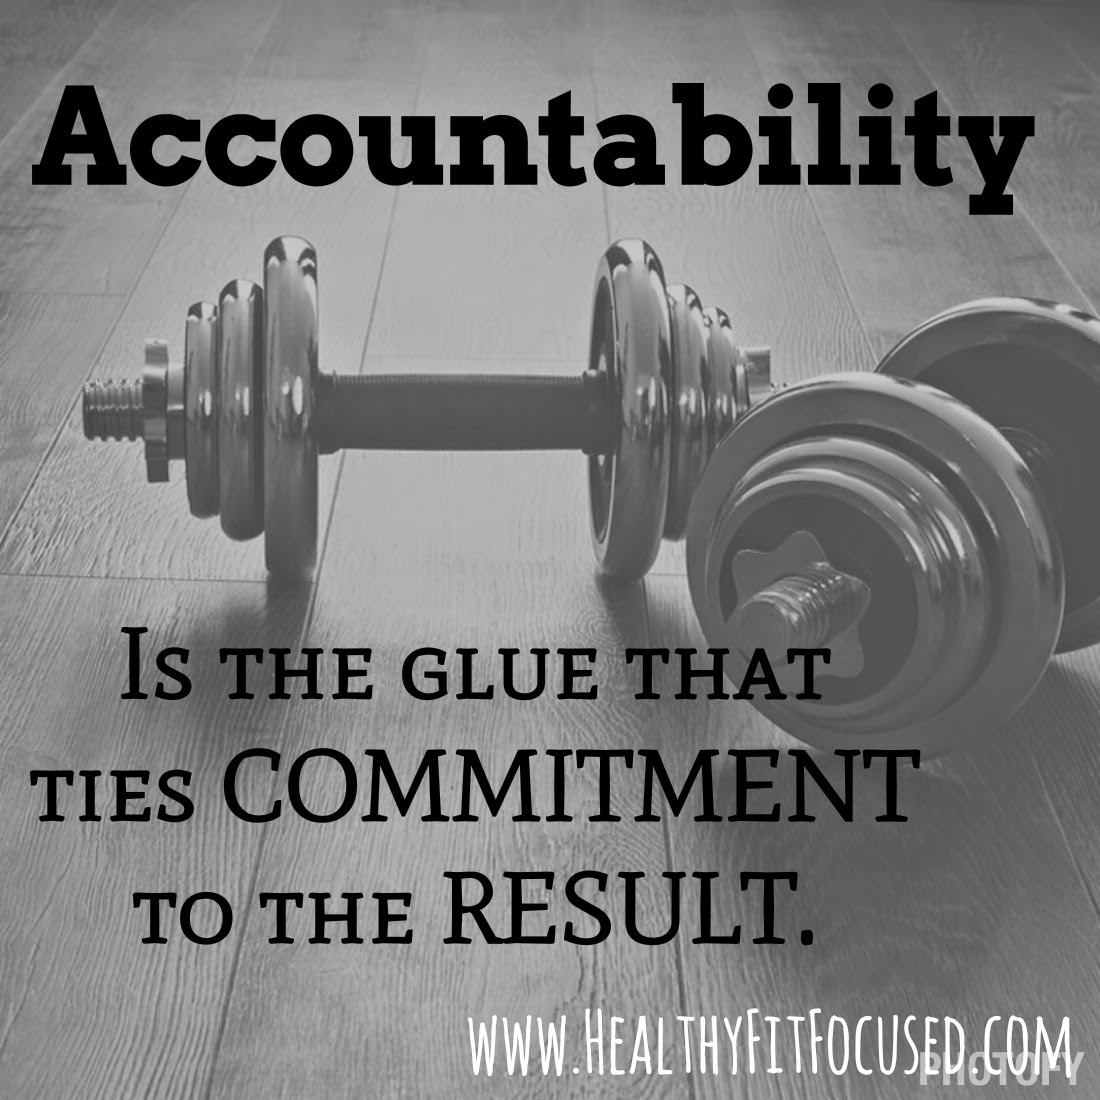 accountability, New Year New You Health and Fitness Challenge, Commit to yourself and getting healthy this new year, 2015 goals, www.HealthyFitFocused.com